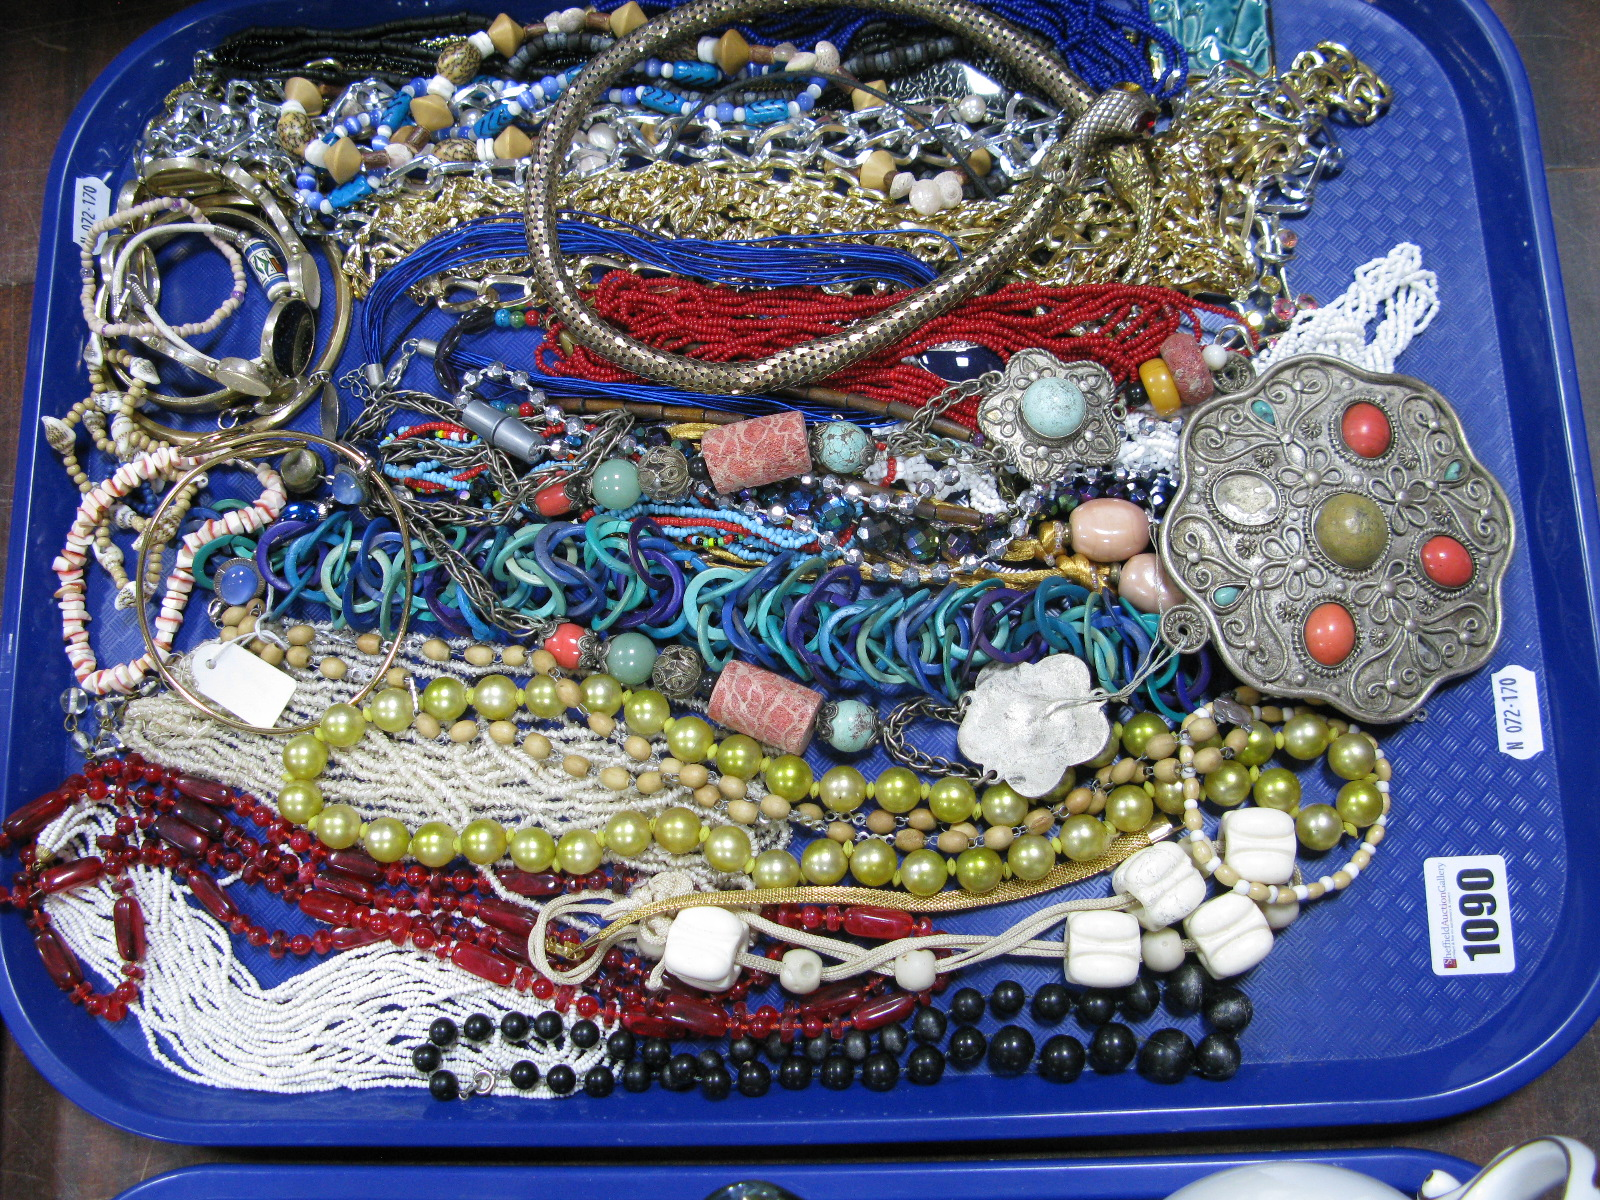 Lot 1090 - A Mixed Lot of Assorted Costume Necklaces, including beads, bangles and bracelets:- One Tray